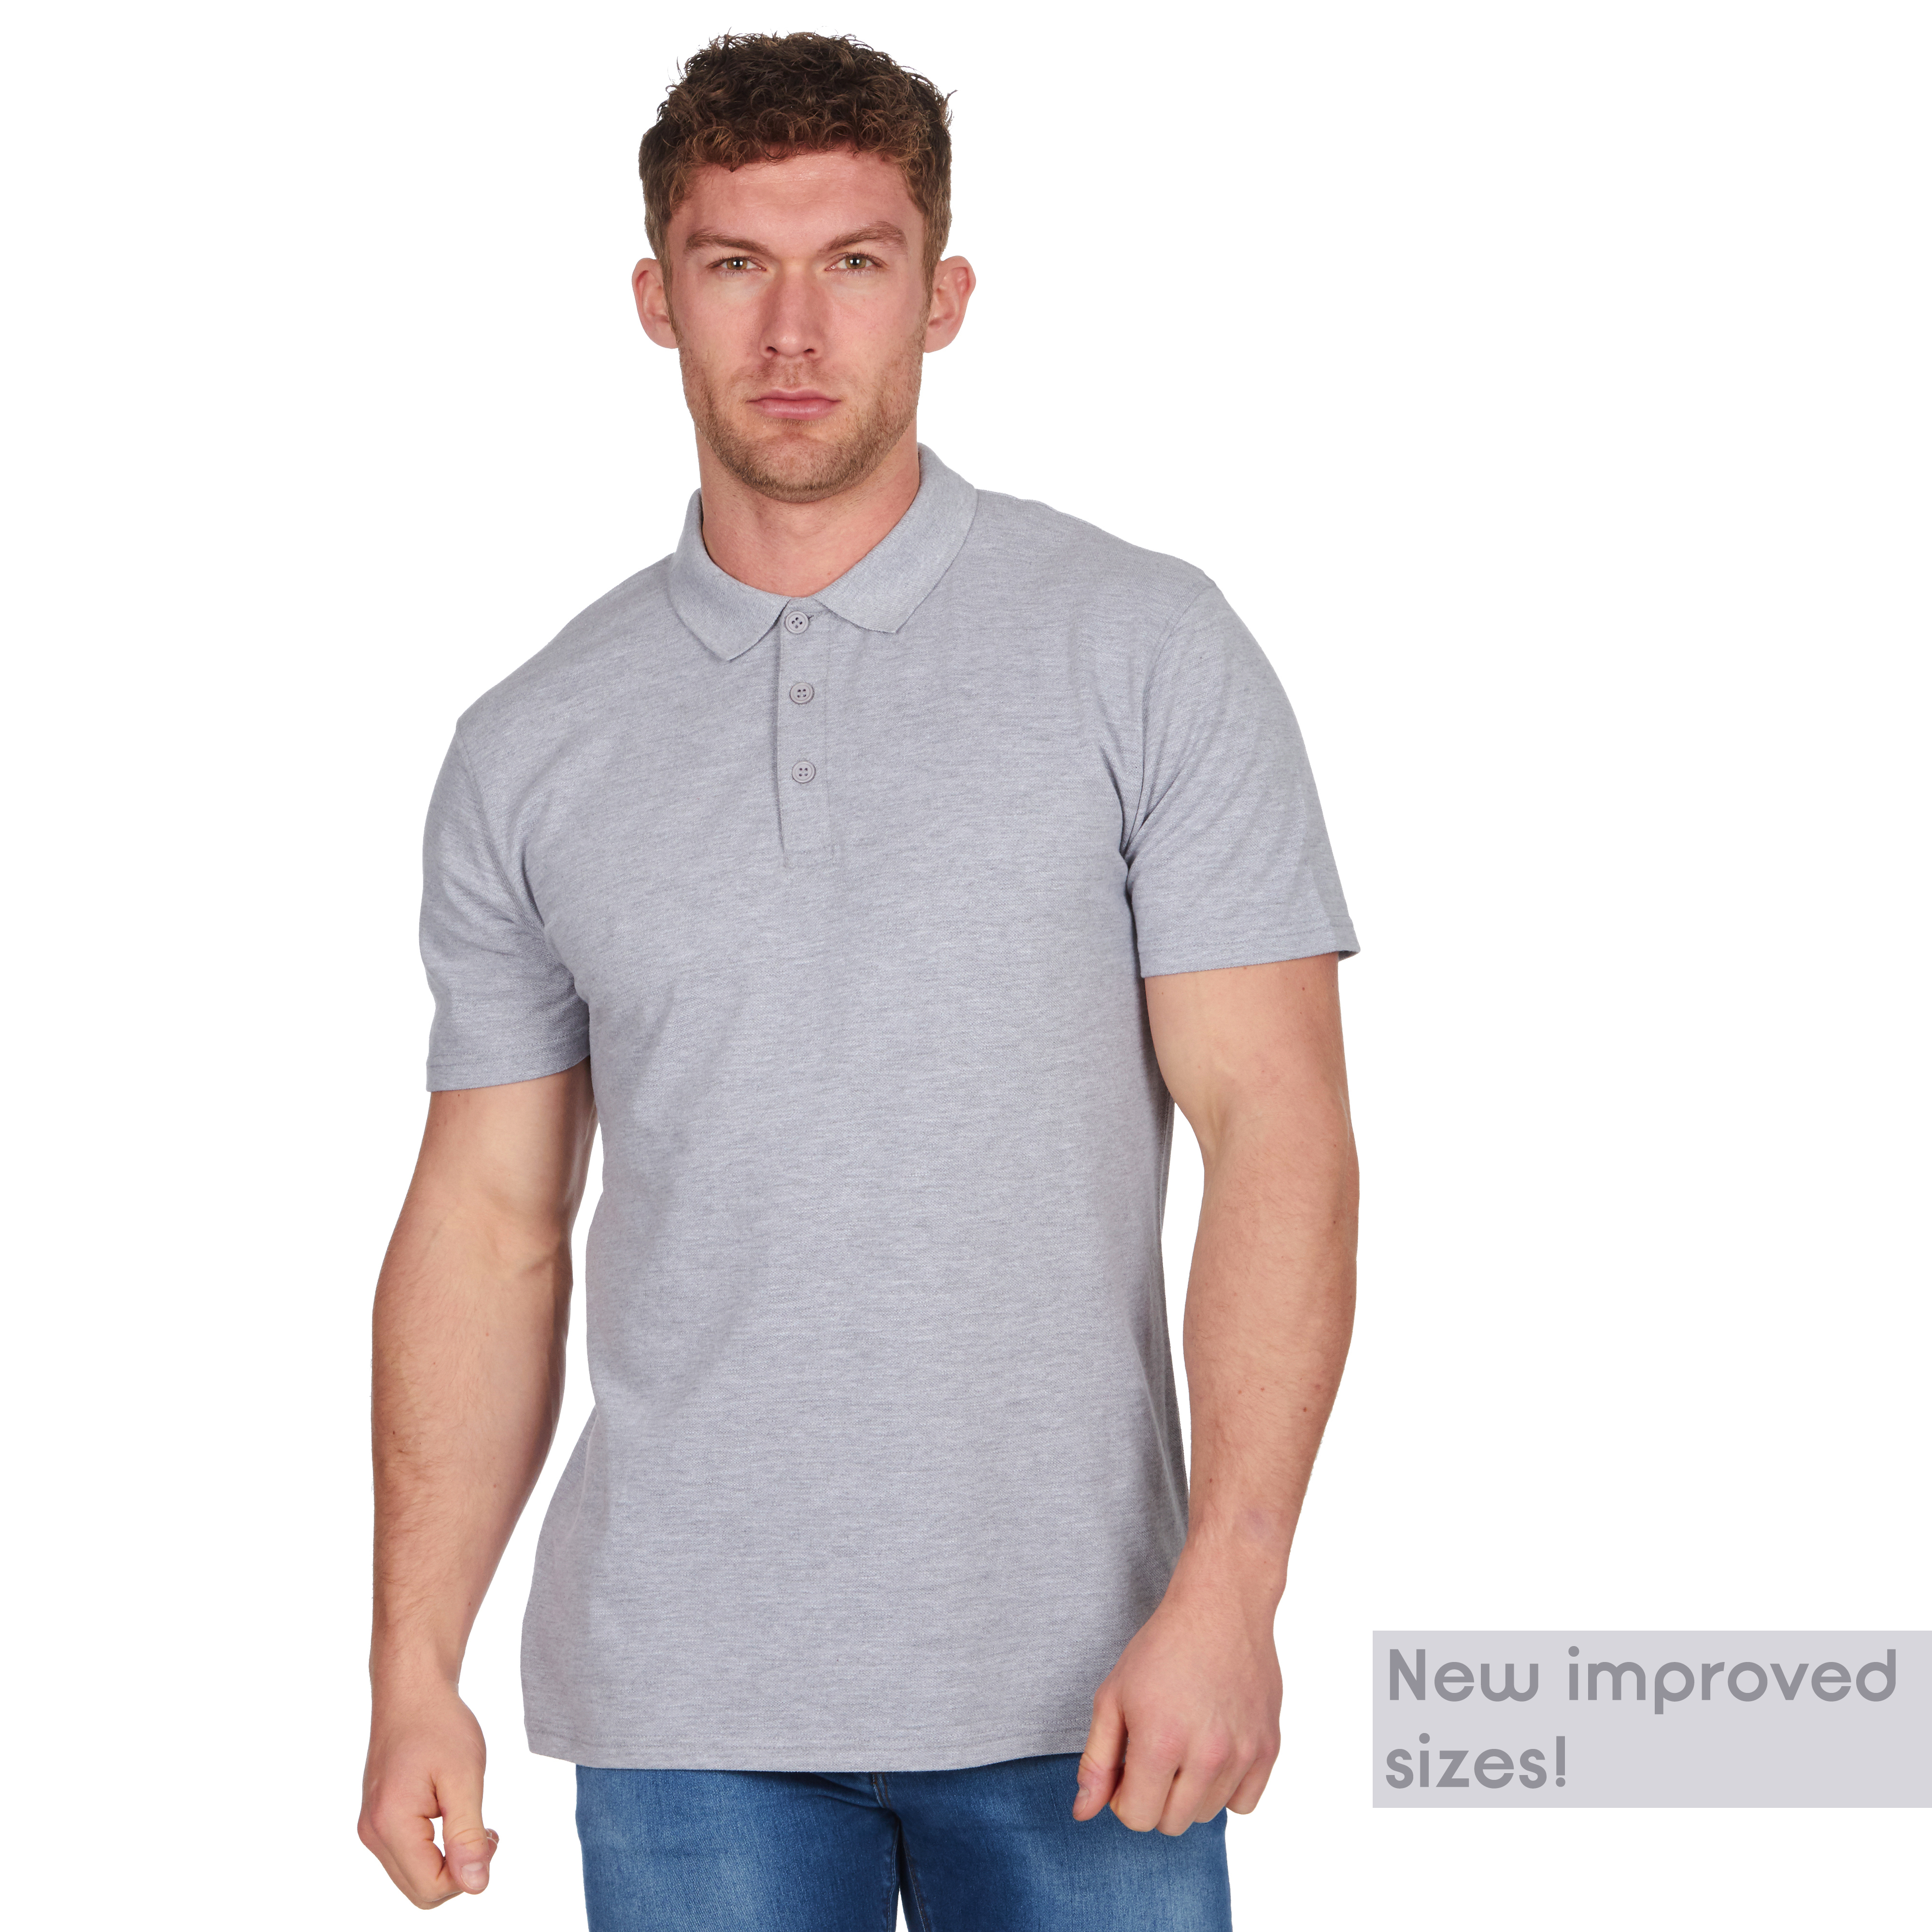 Mens-Classic-Polo-Top-Plus-Size-T-Shirt-Plain-Shirt-Big-And-Tall-Short-Sleeve thumbnail 8